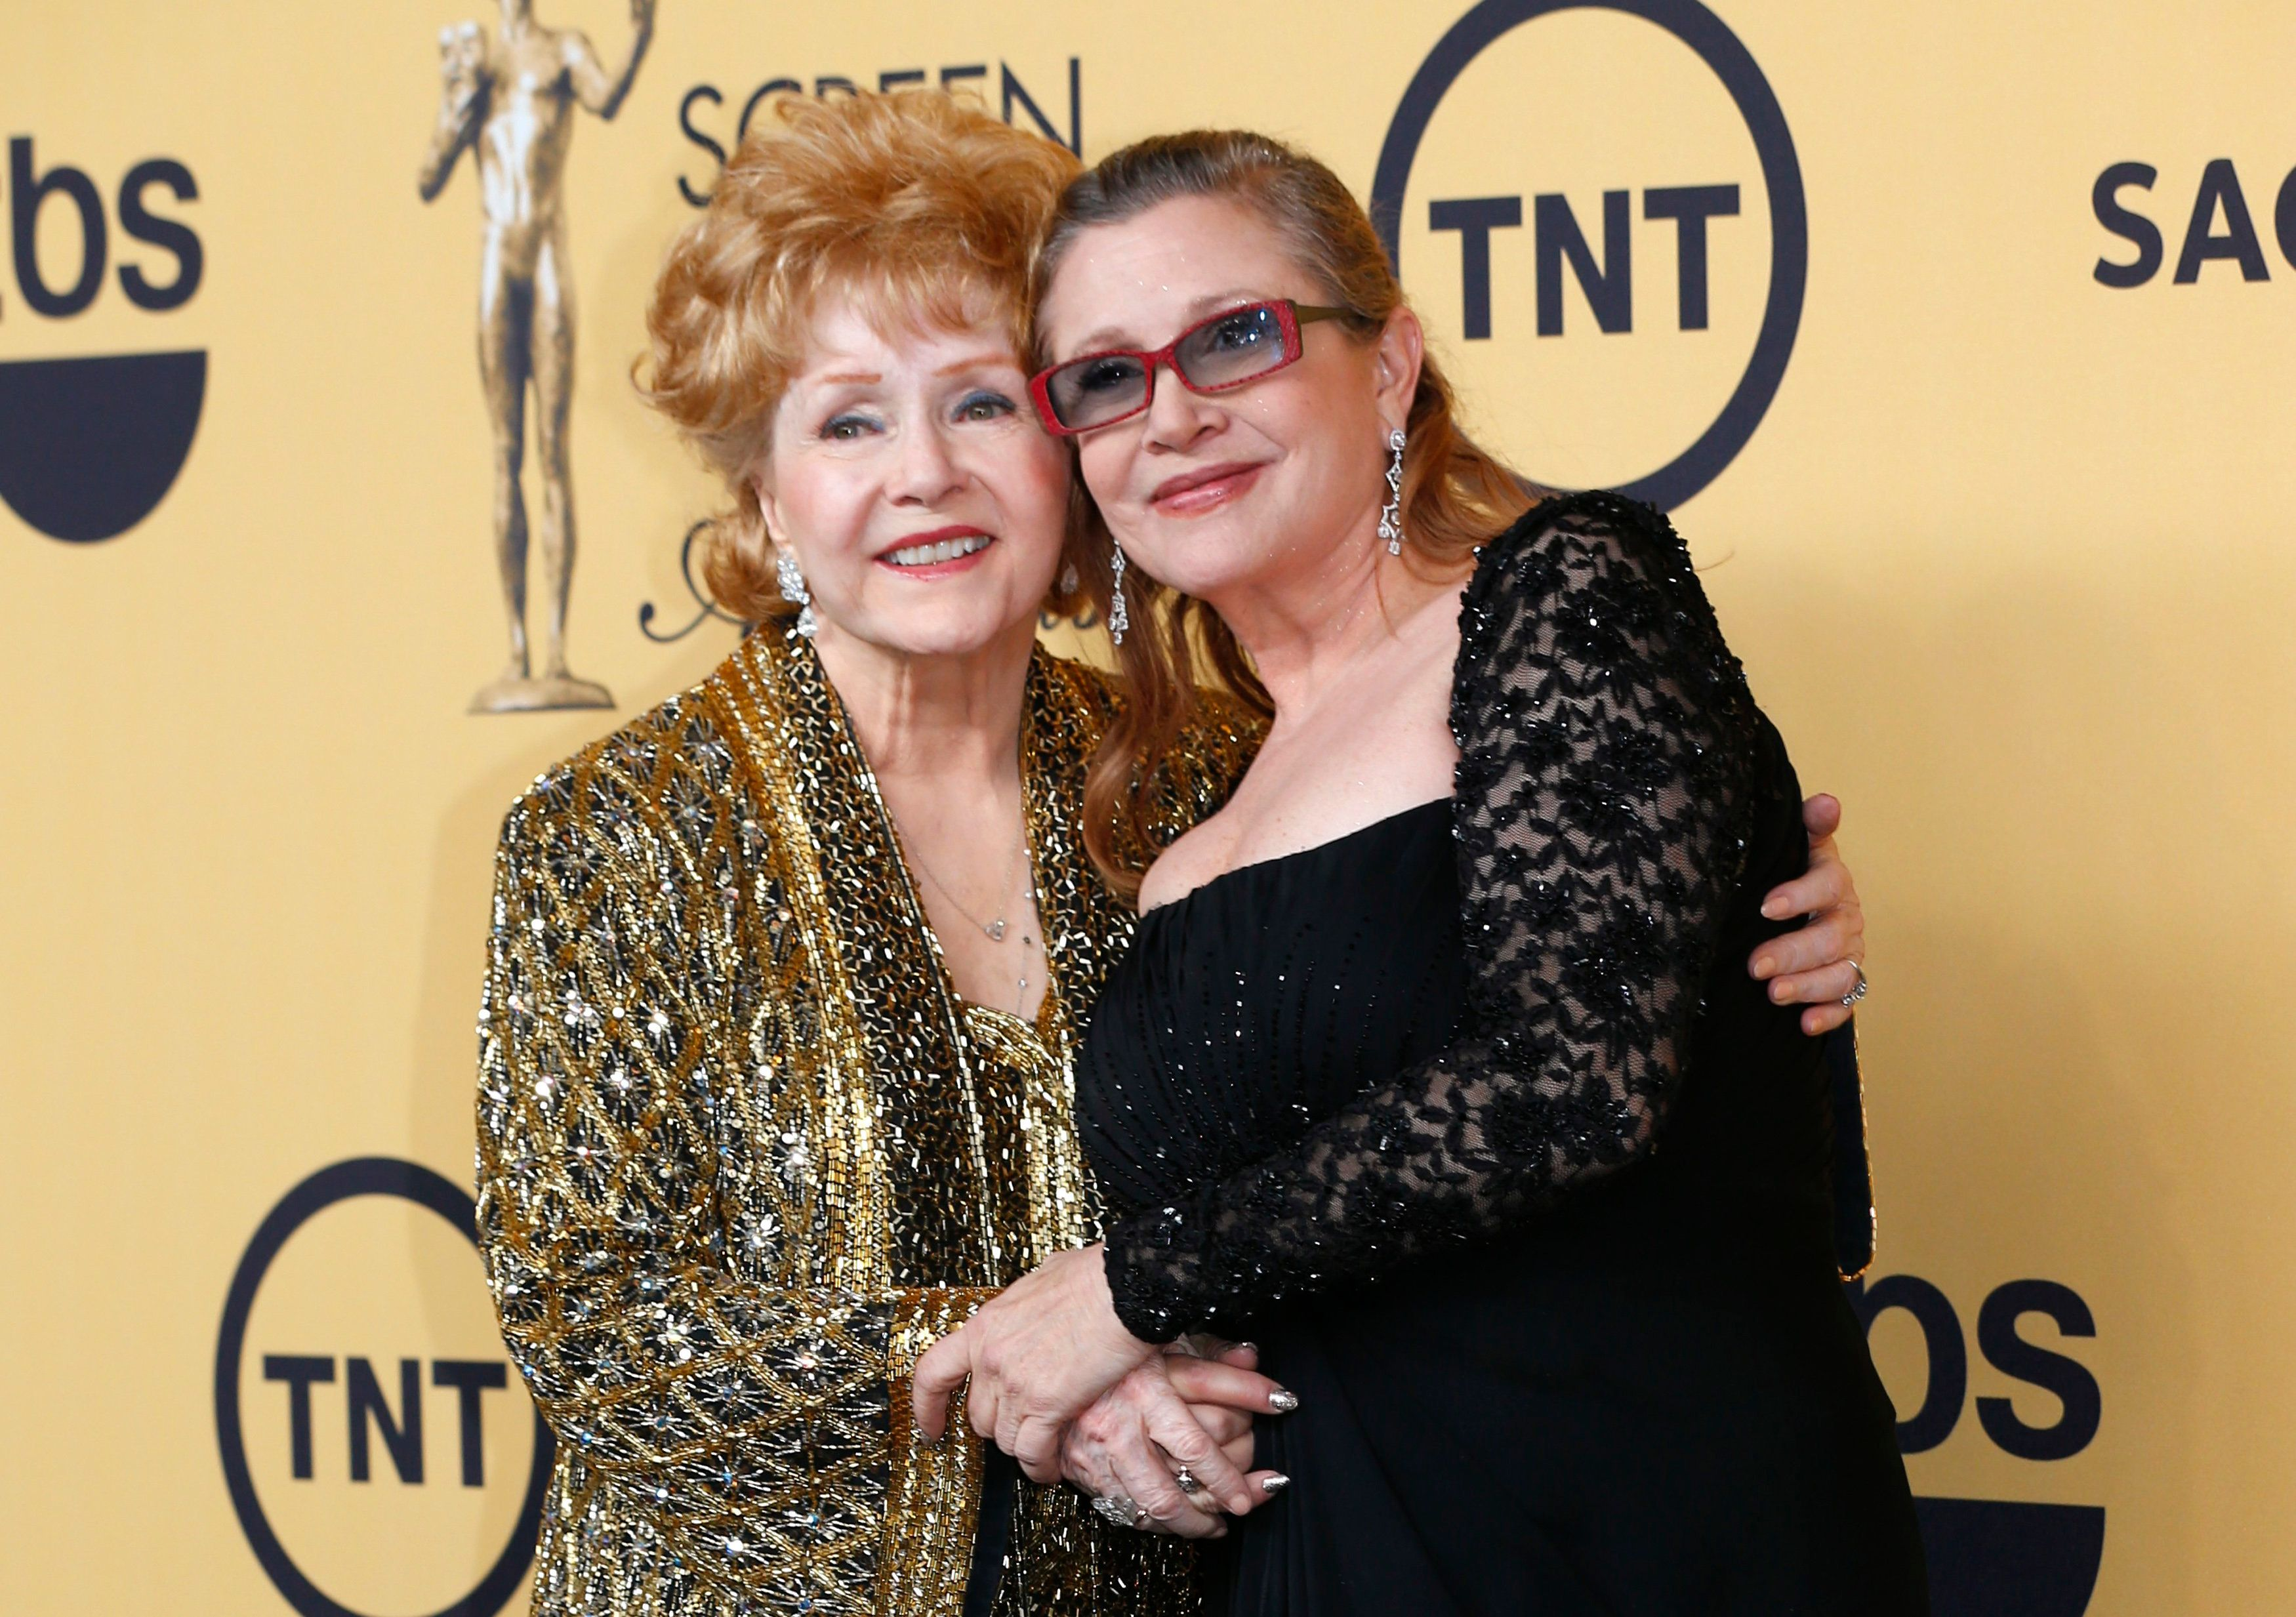 Actress Debbie Reynolds poses with her daughter actress Carrie Fisher backstage after accepting her Lifetime Achievement awar